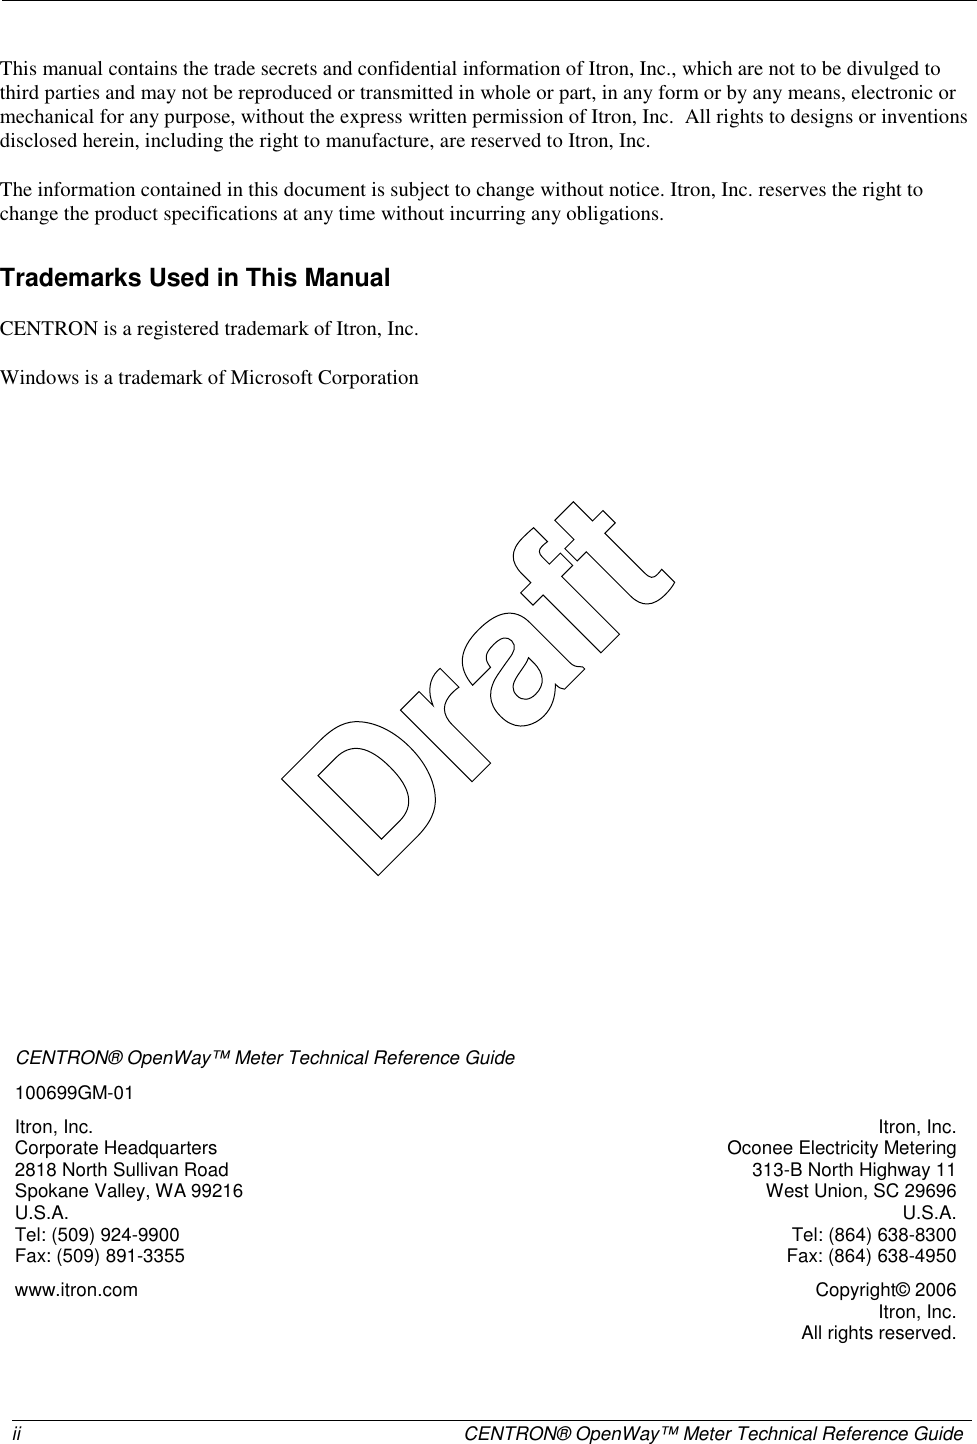 Itron AMI-2 CENTRON OPENWAY ELECTRICITY METER User Manual USERS MANUAL